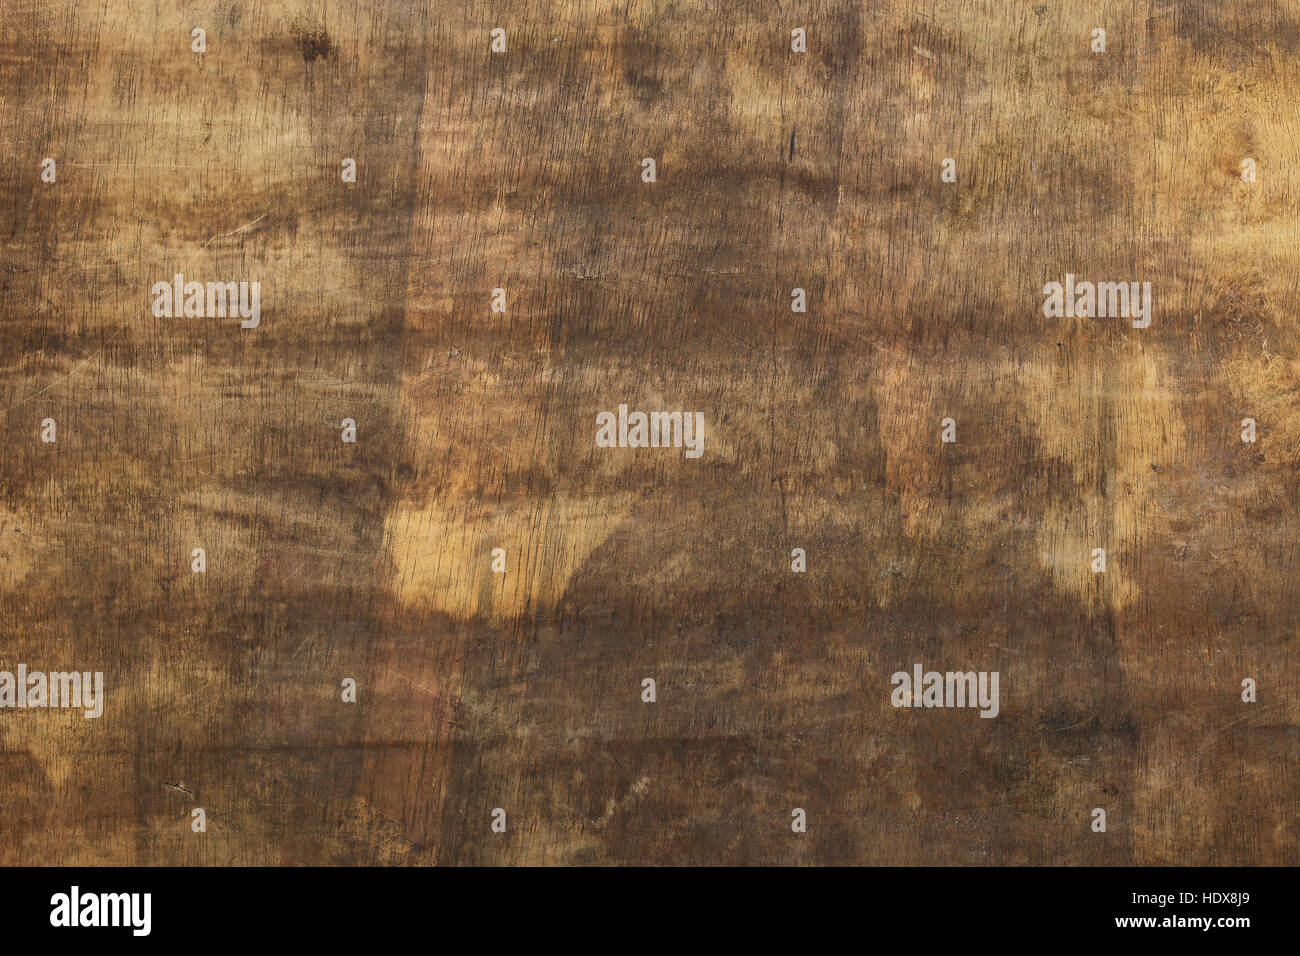 Grunge brown yellow wood texture background with scratches. - Stock Image